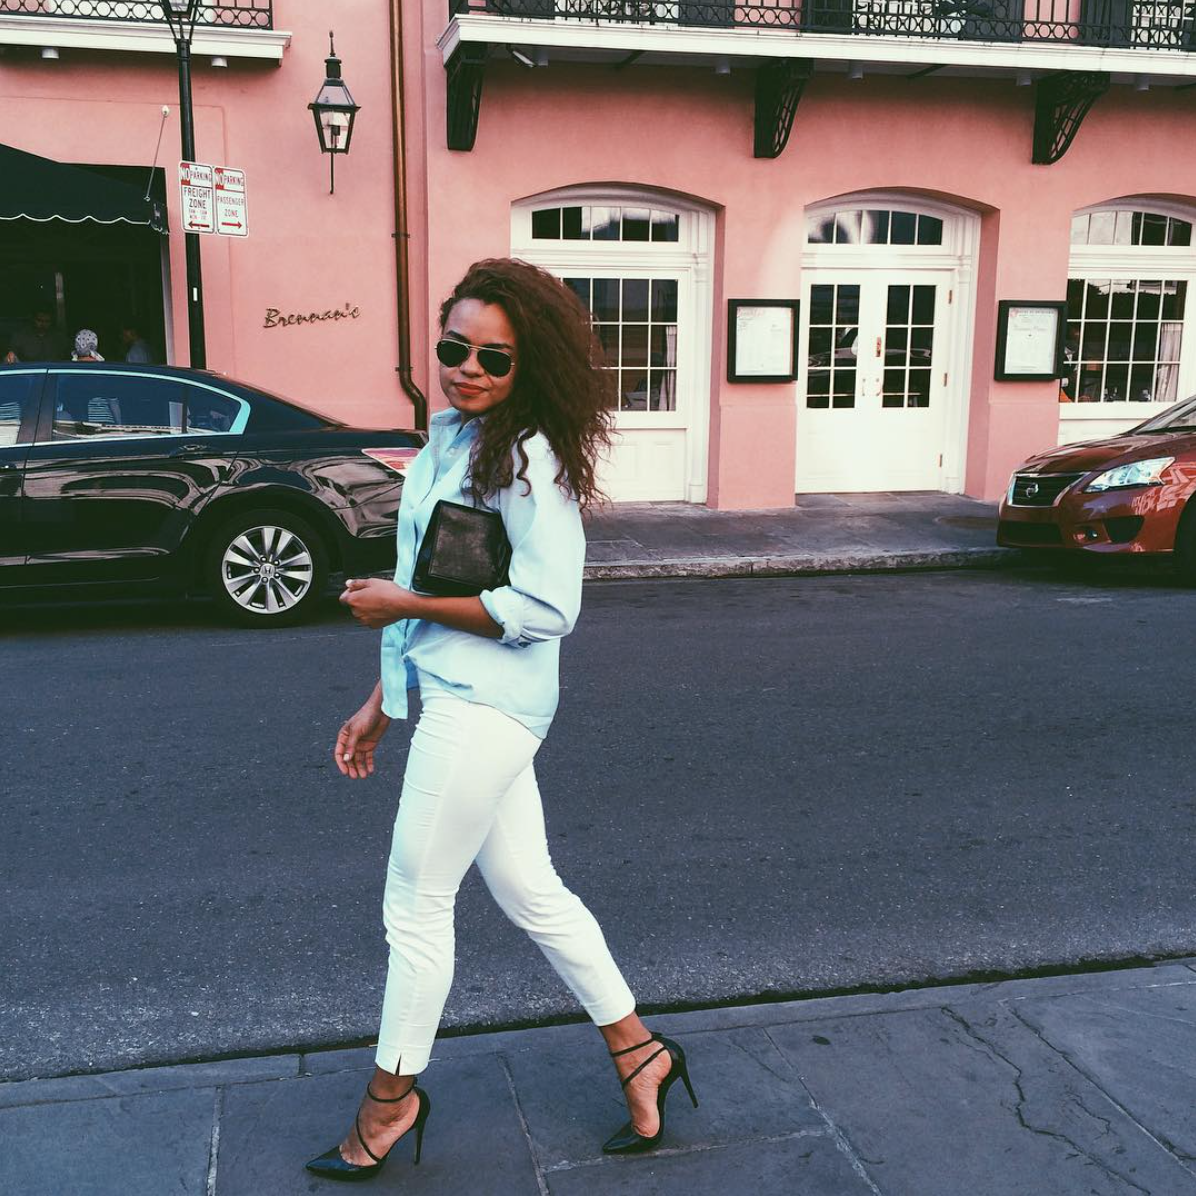 wearing: H&M pants, Land's End top, Alice & Olivia shoes, YSL clutch, Ray Ban sunglasses